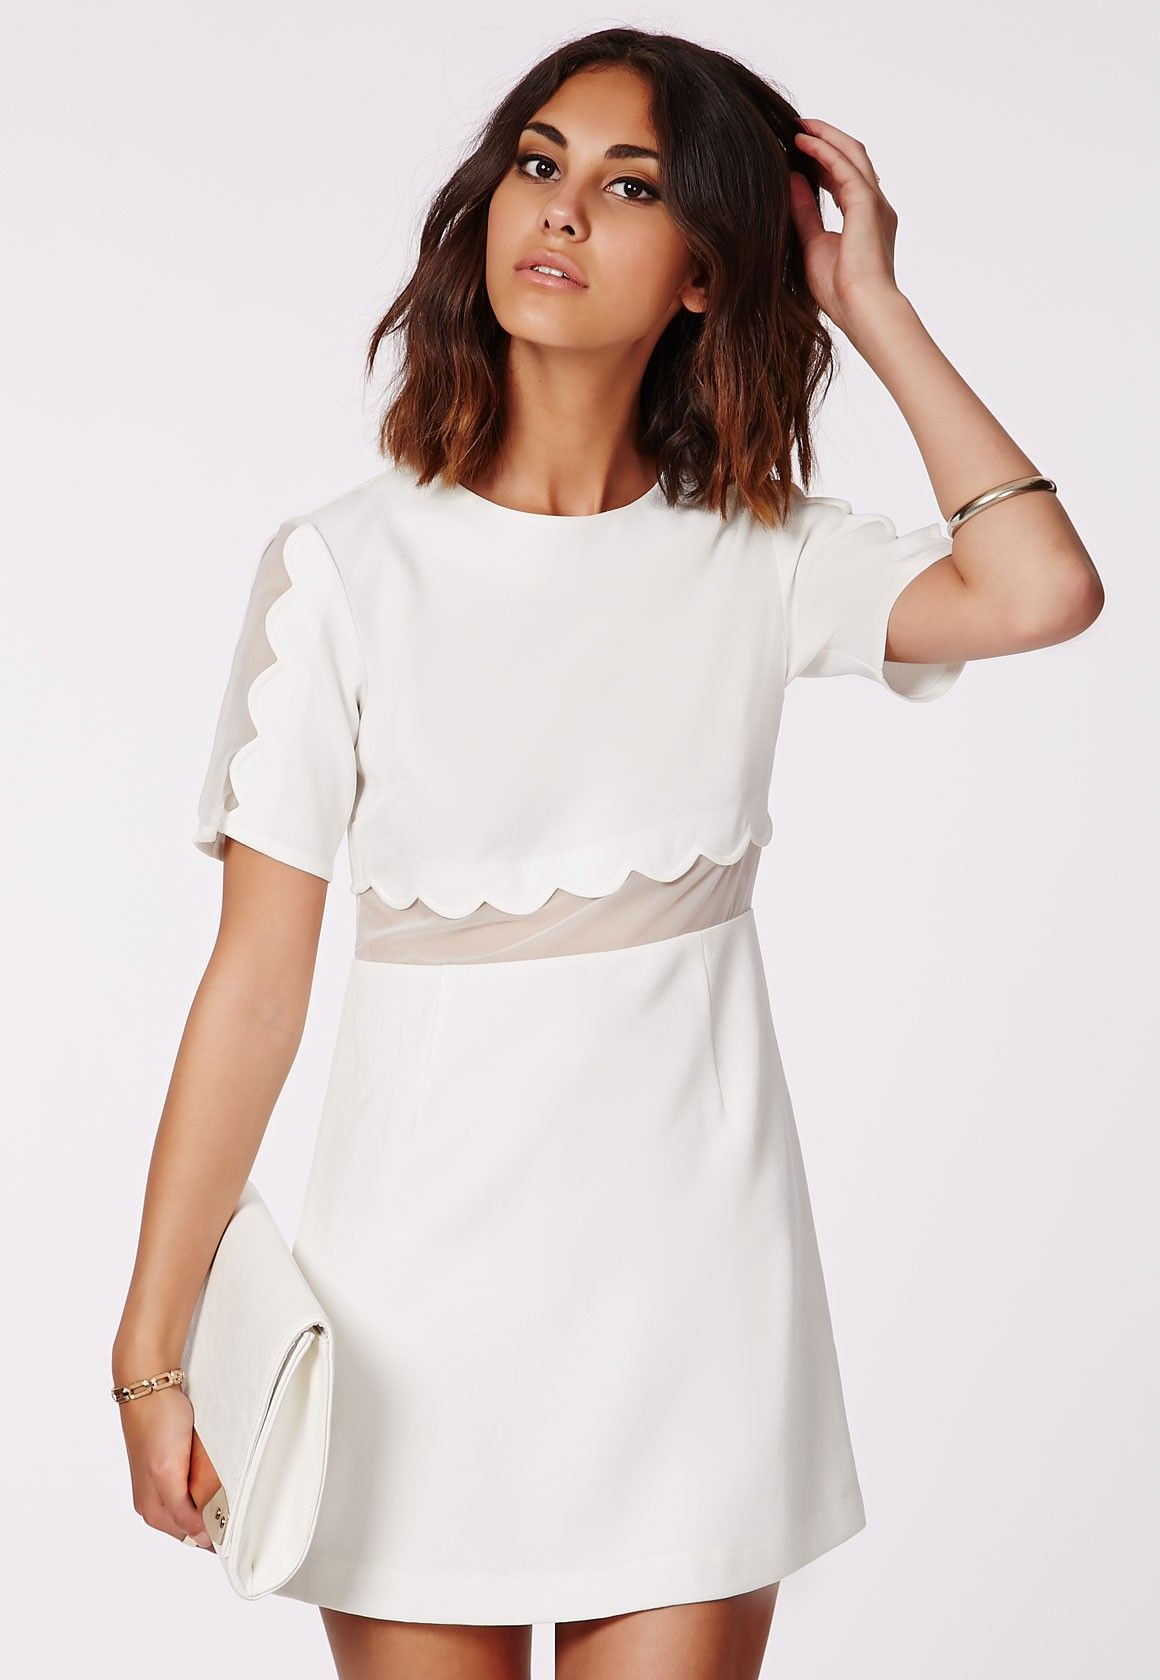 Verity Crepe Scallop Shift Dress - Mini Dresses - Missguided  d50ff767cf56e